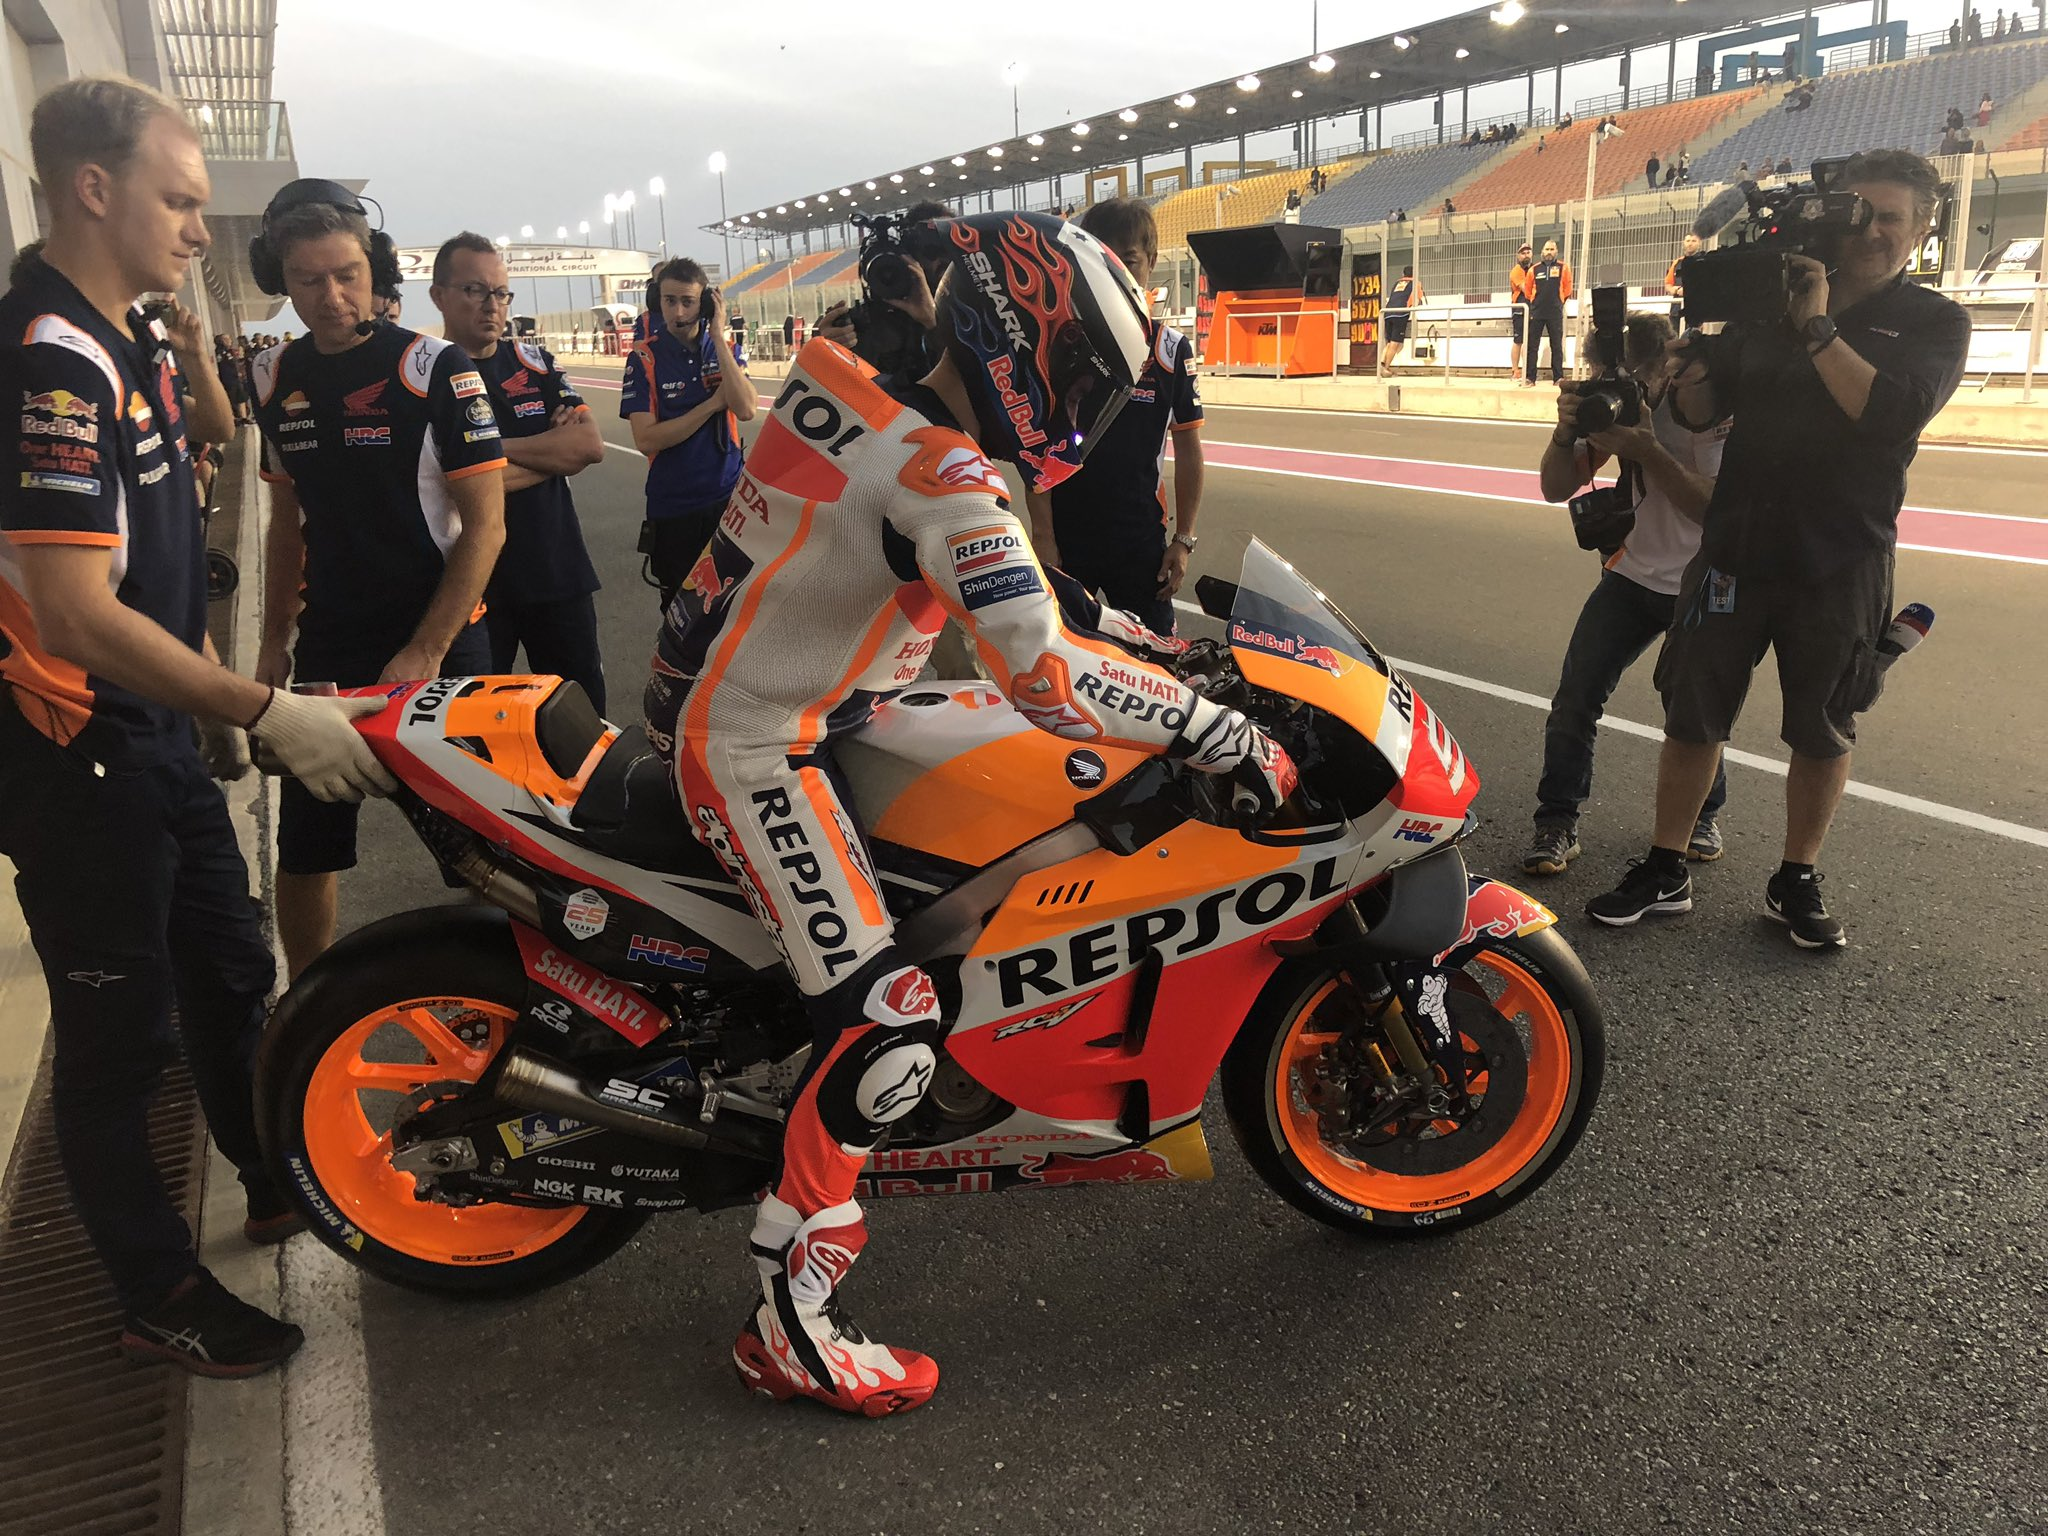 MOTO GP TESTS 2019 - Page 3 D0GOqNMWwAIa1fw